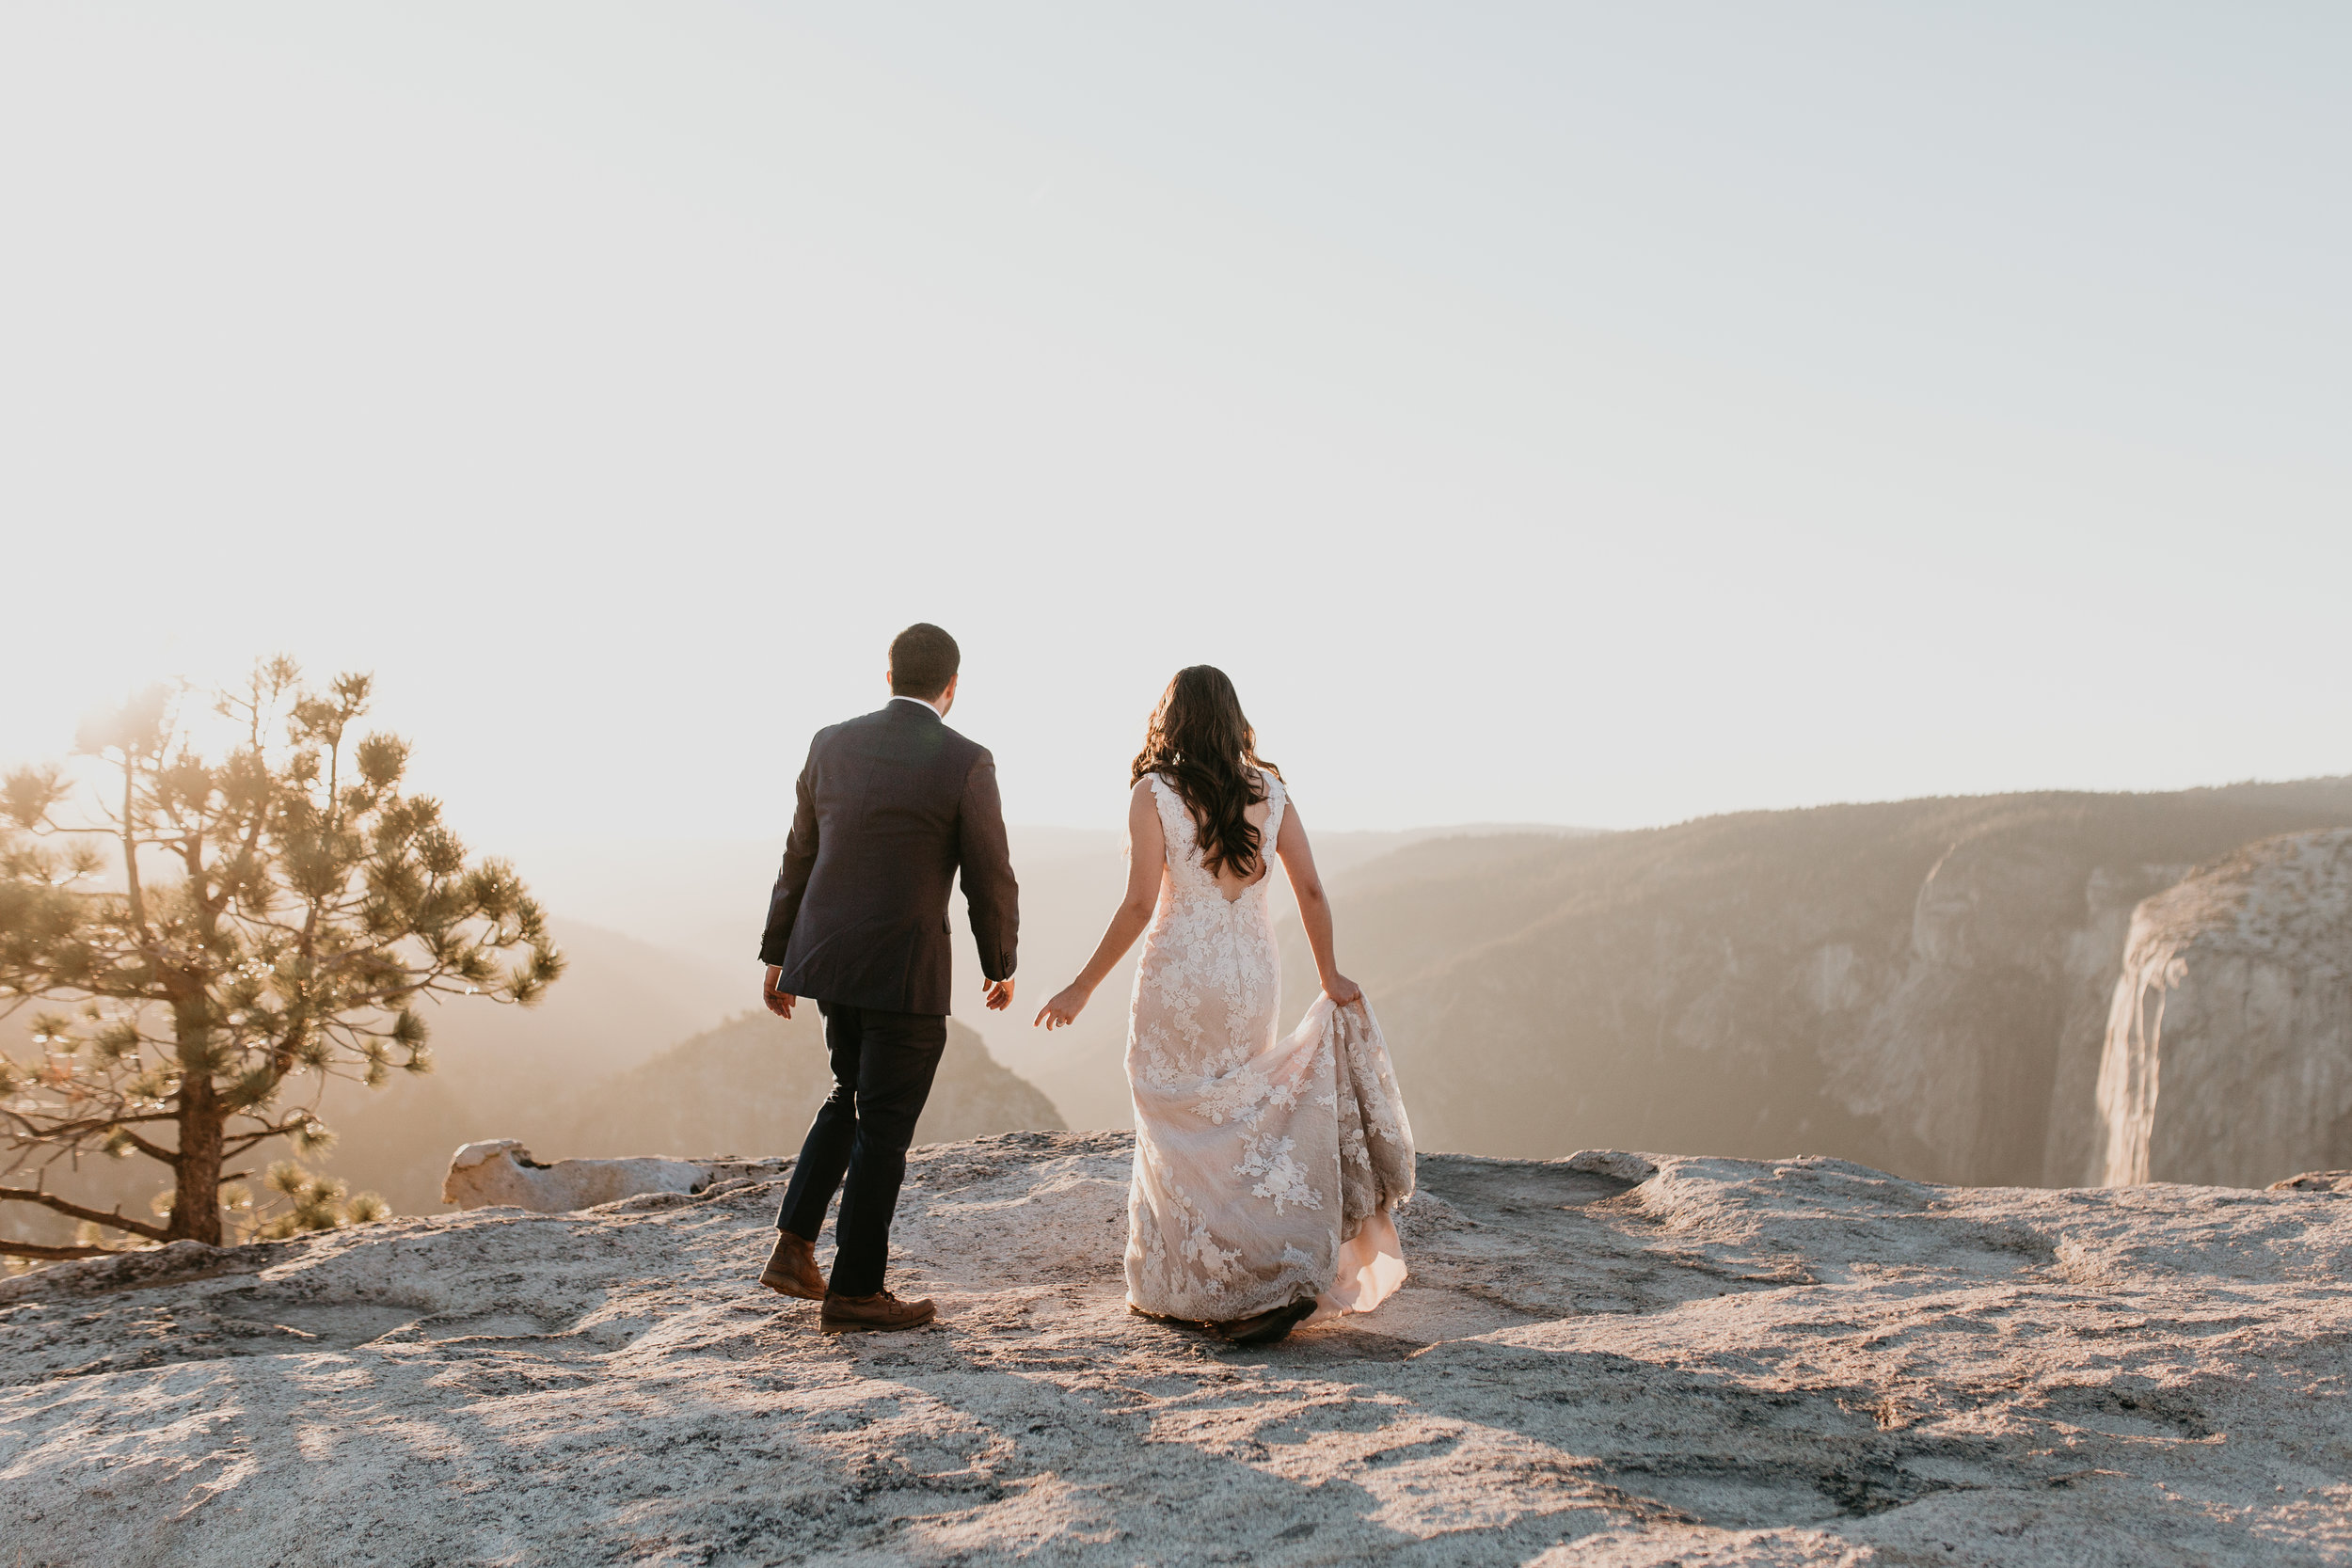 nicole-daacke-photography-intimate-elopement-wedding-yosemite-national-park-california-taft-point-sunset-photos-yosemite-valley-tunnel-view-first-look-sunrise-golden-granite-hiking-adventure-wedding-adventurous-elopement-photographer-105.jpg